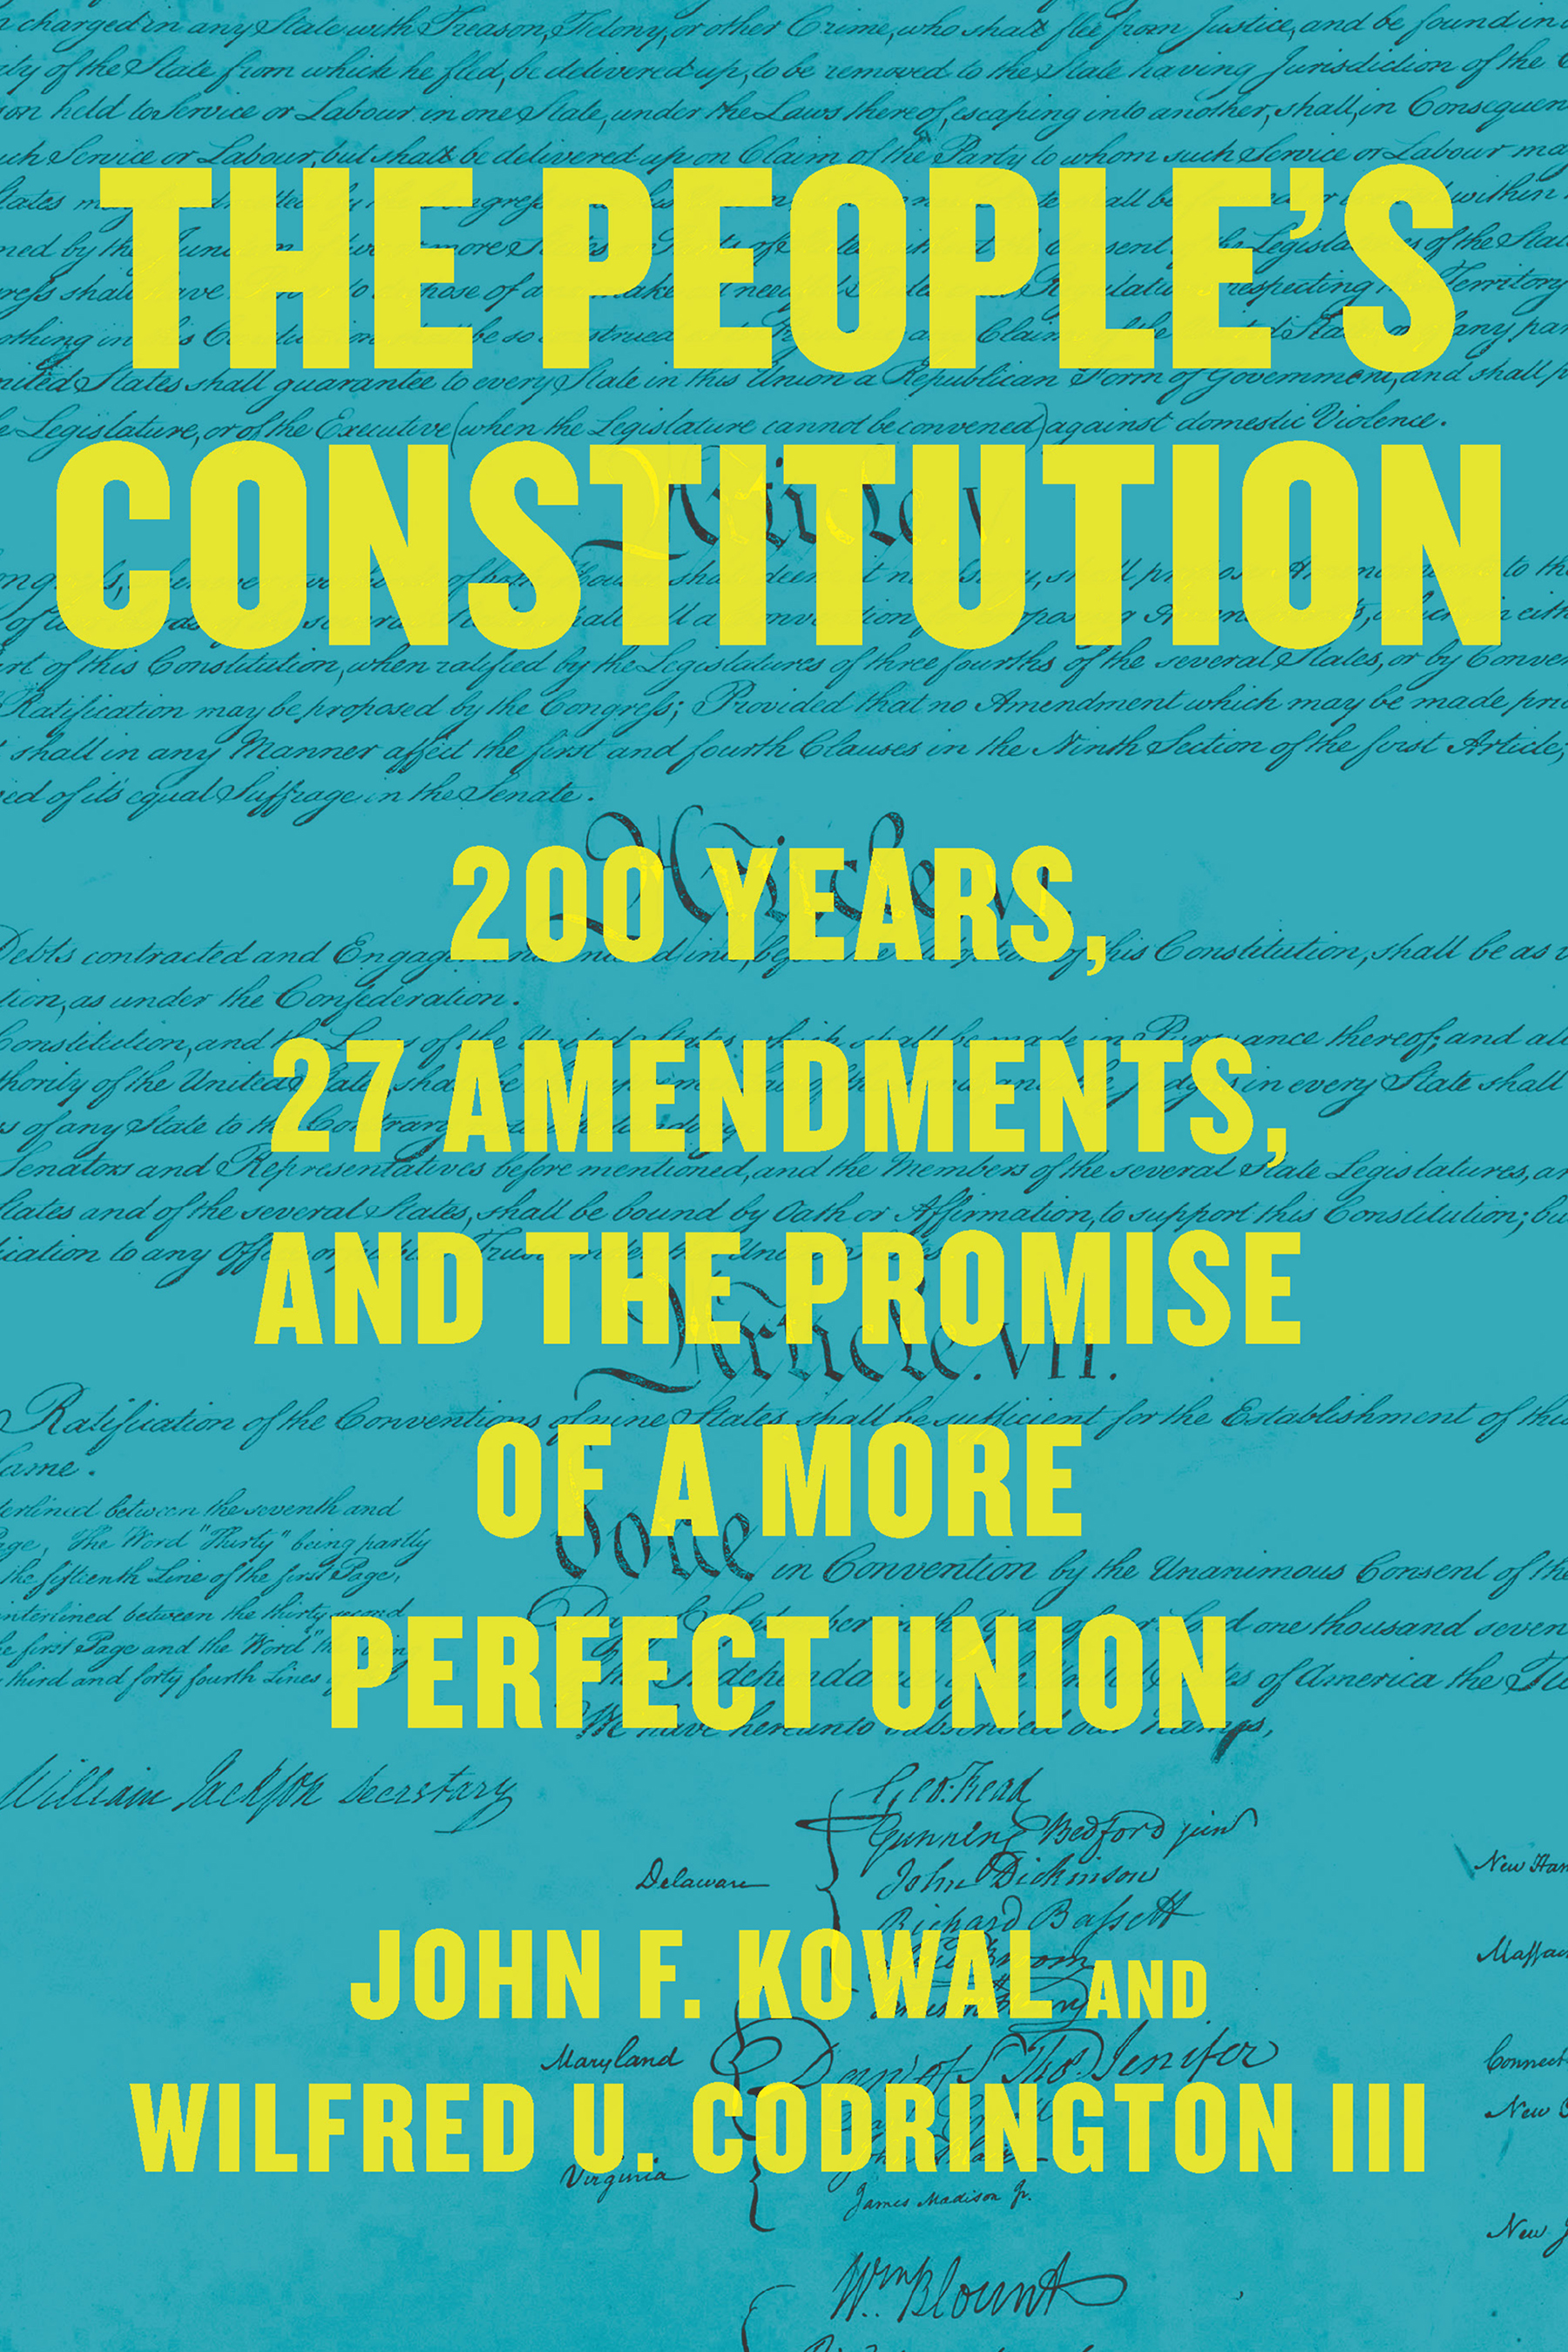 The People's Constitution